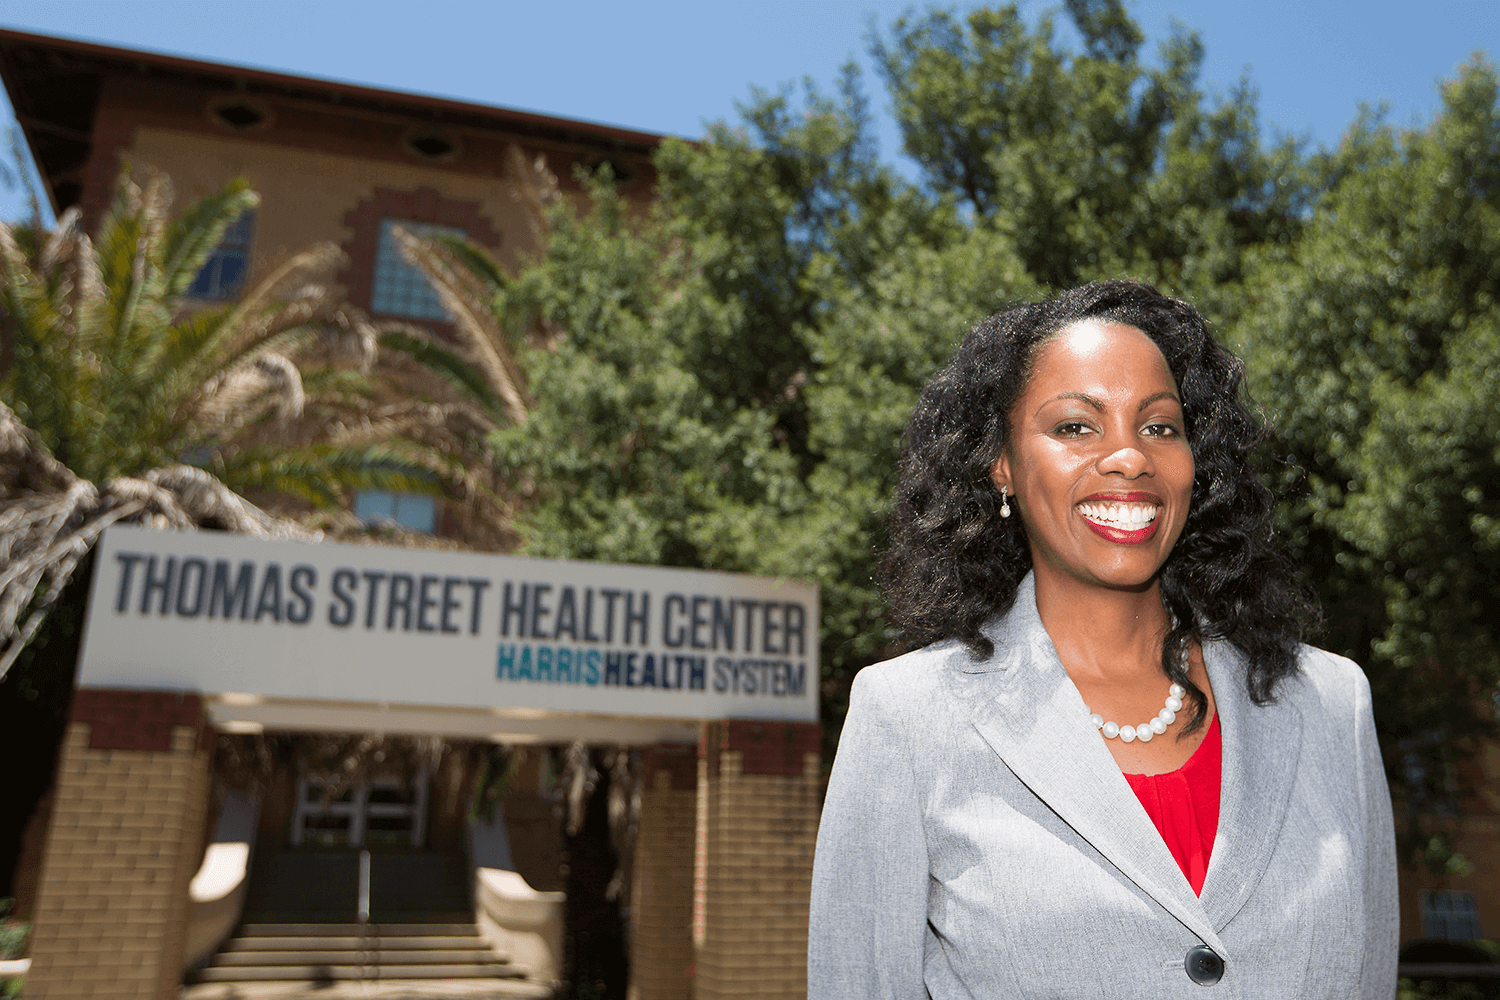 Charlene Flash, M.D., is leading the charge to eliminate HIV and AIDS in the South.